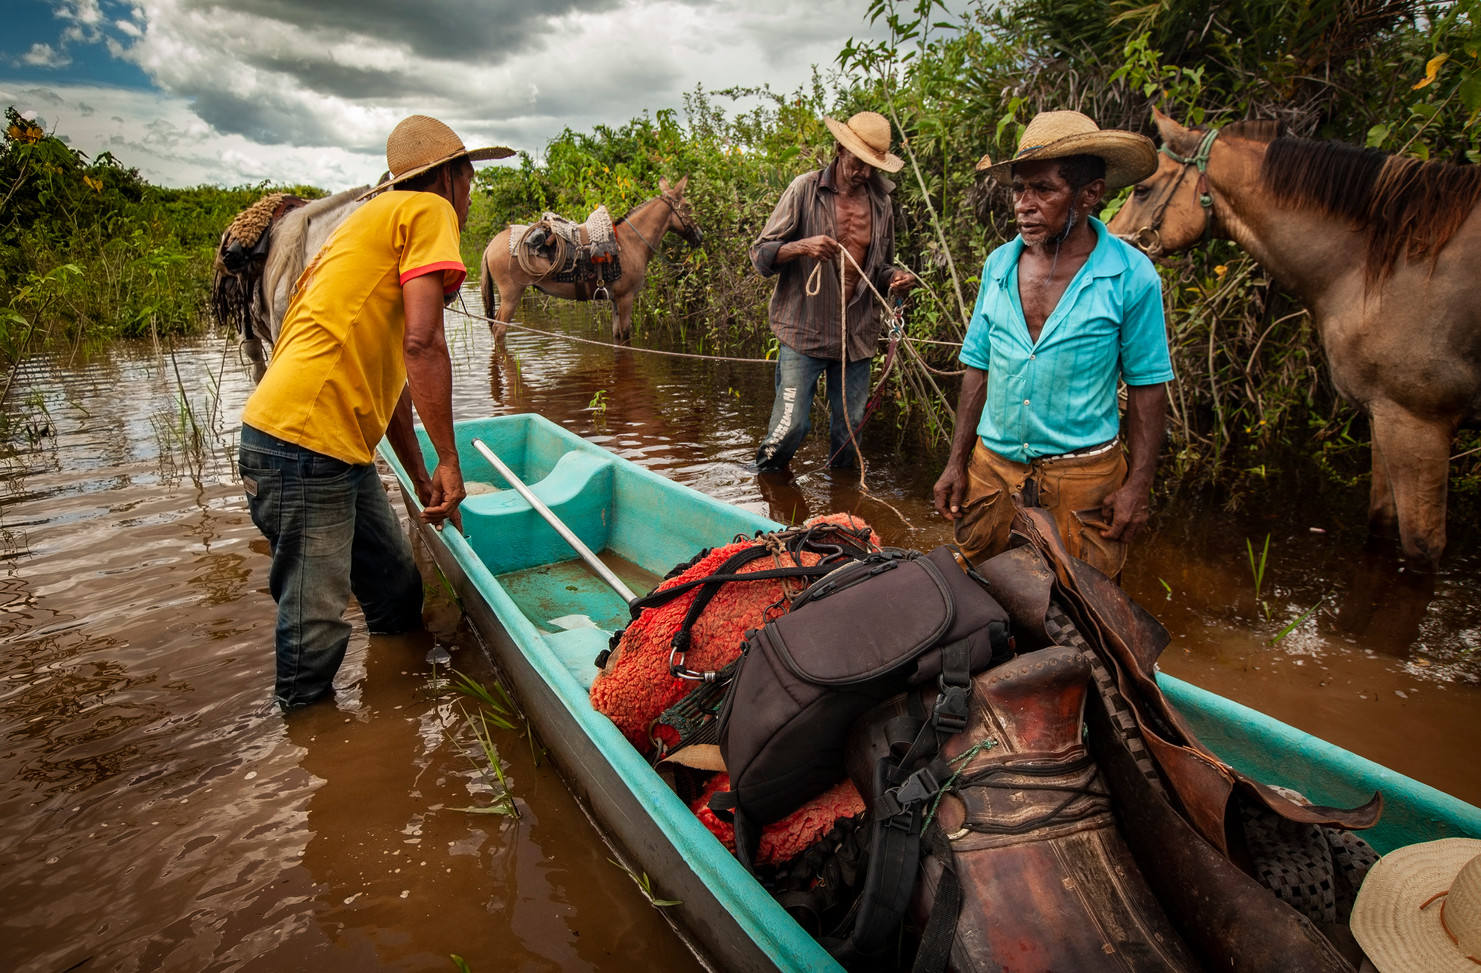 Local cowboys load cargo from horseback and place it into rivers to cross the Paraguay River (O Rio Paraguayzinho). During the wet season, treks are impossible to make in much of the wetlands, therefore horses and canoes are used.